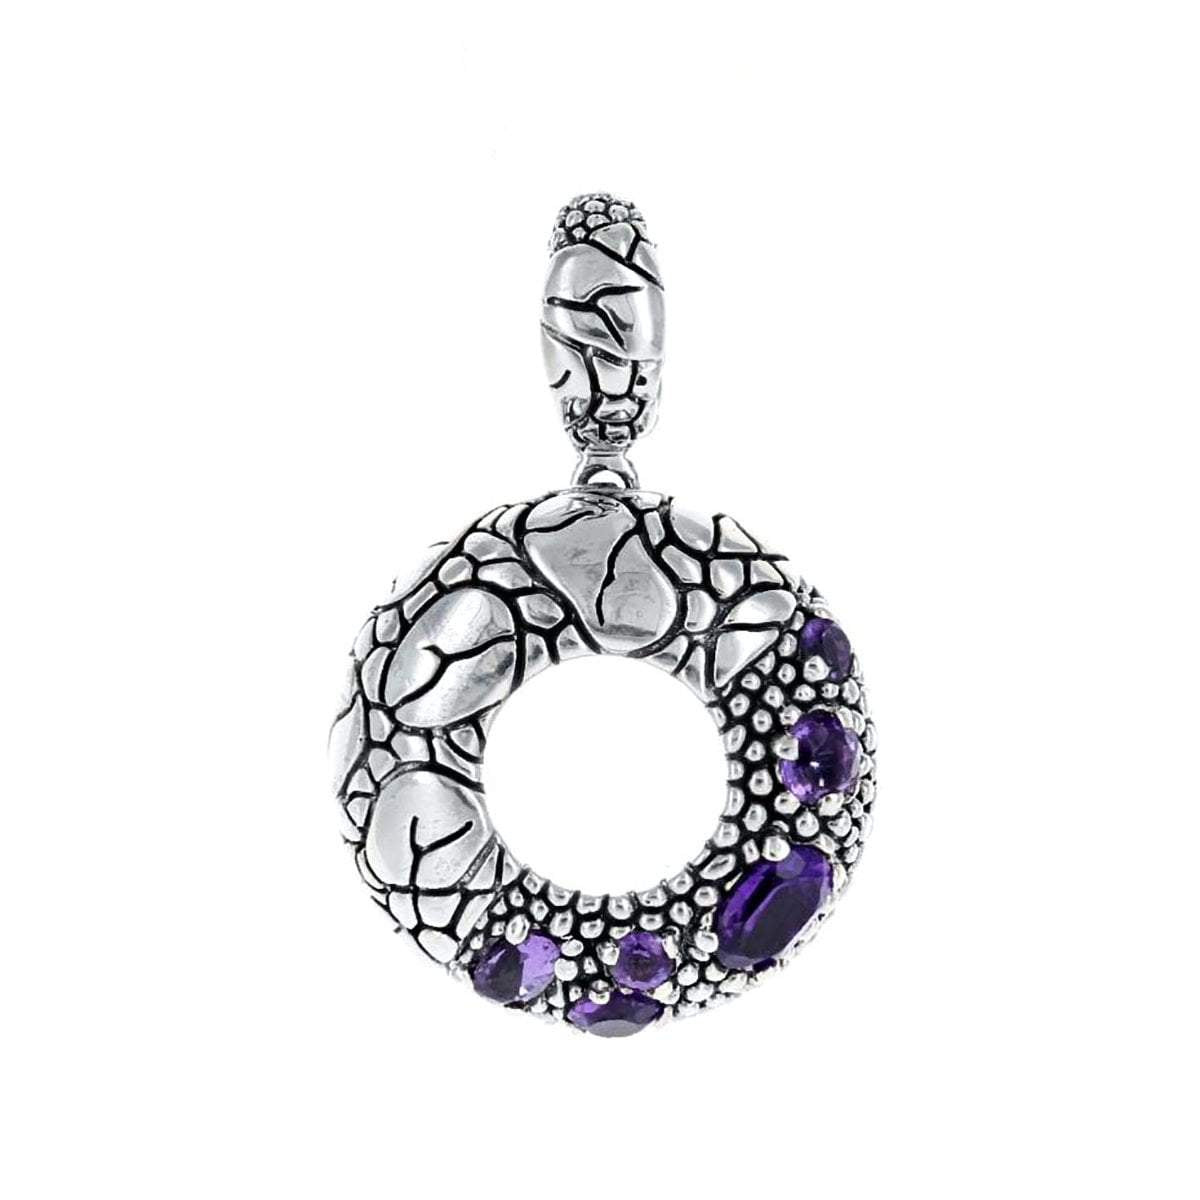 David Beck Bali Pendants Default Title / Silver / Purple David Beck Bali Open Circle Pendant in Sterling Silver and Amethyst 1150490